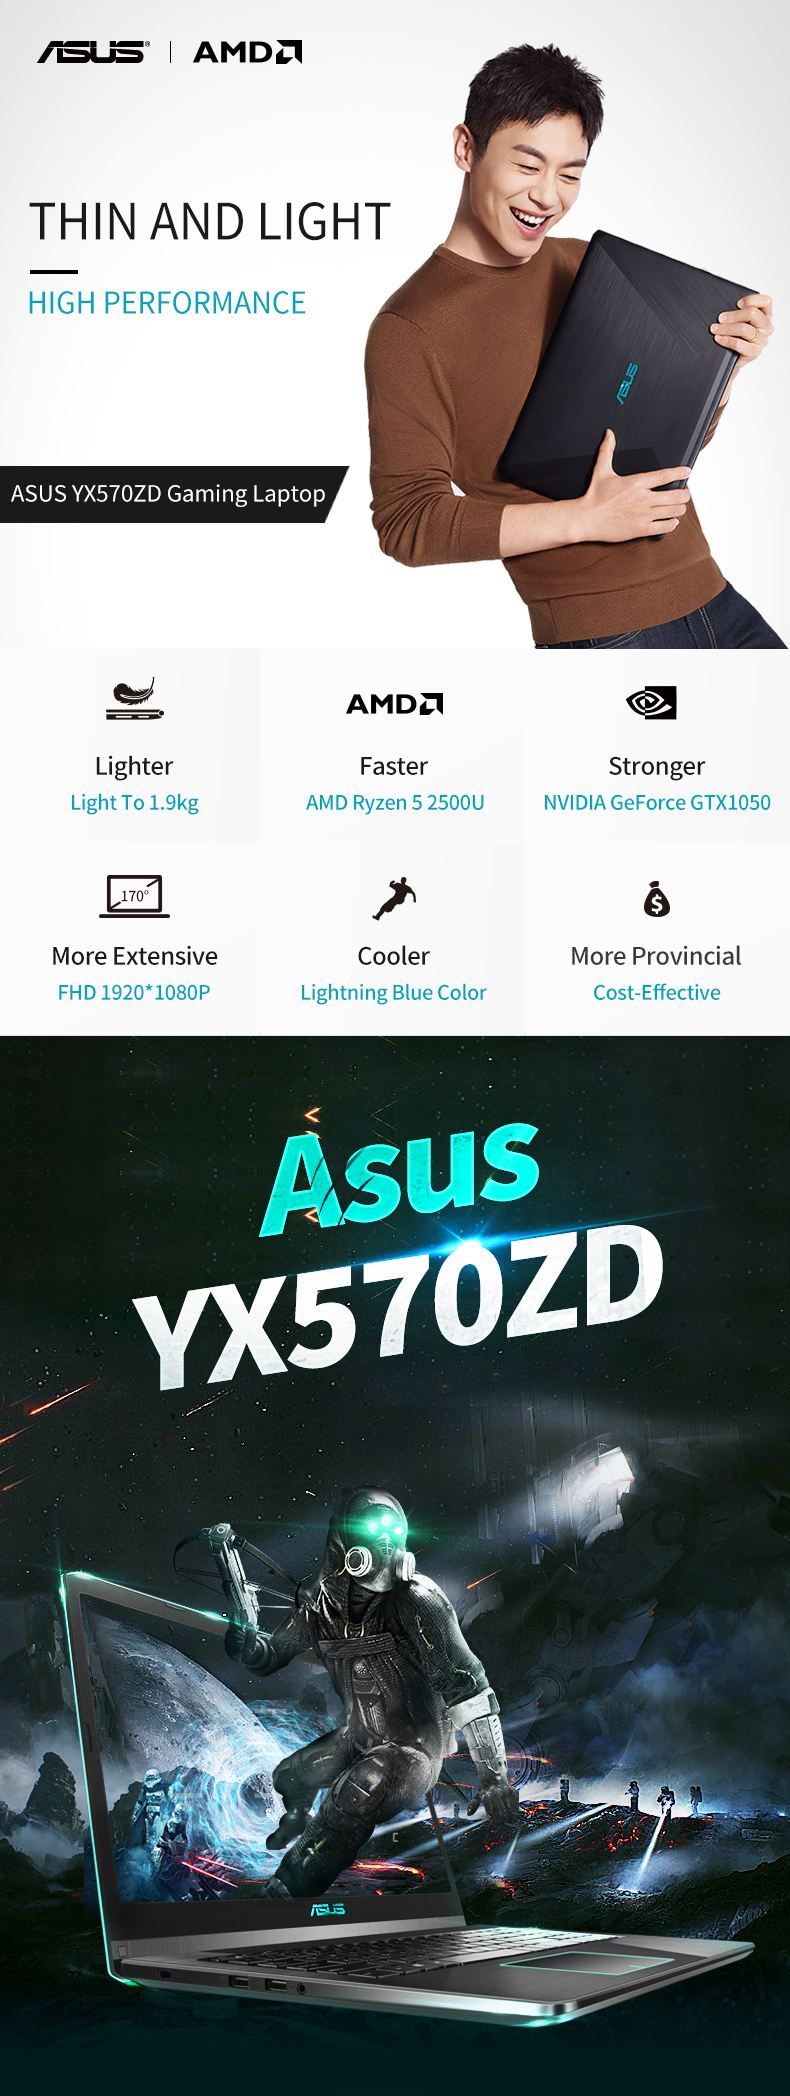 ASUS YX570ZD gaming laptop